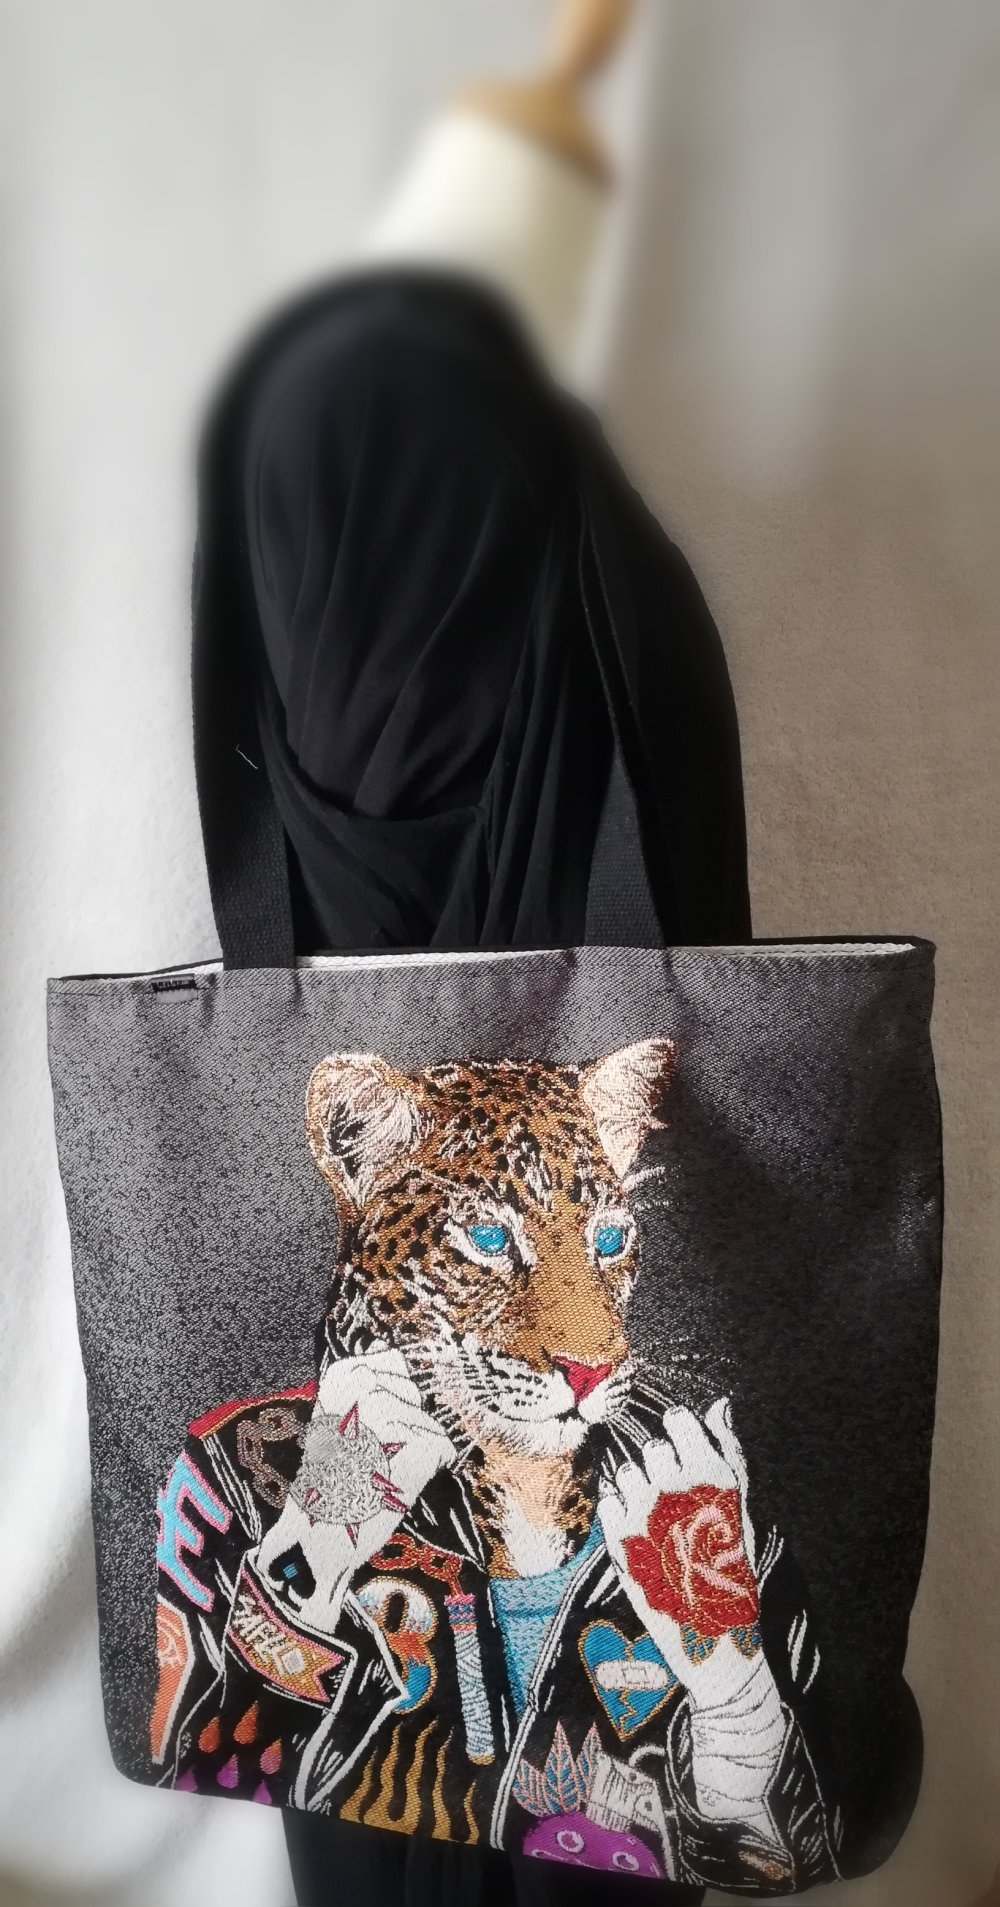 Grand tote bag, cabas de fabrication artisanale - modèle unique